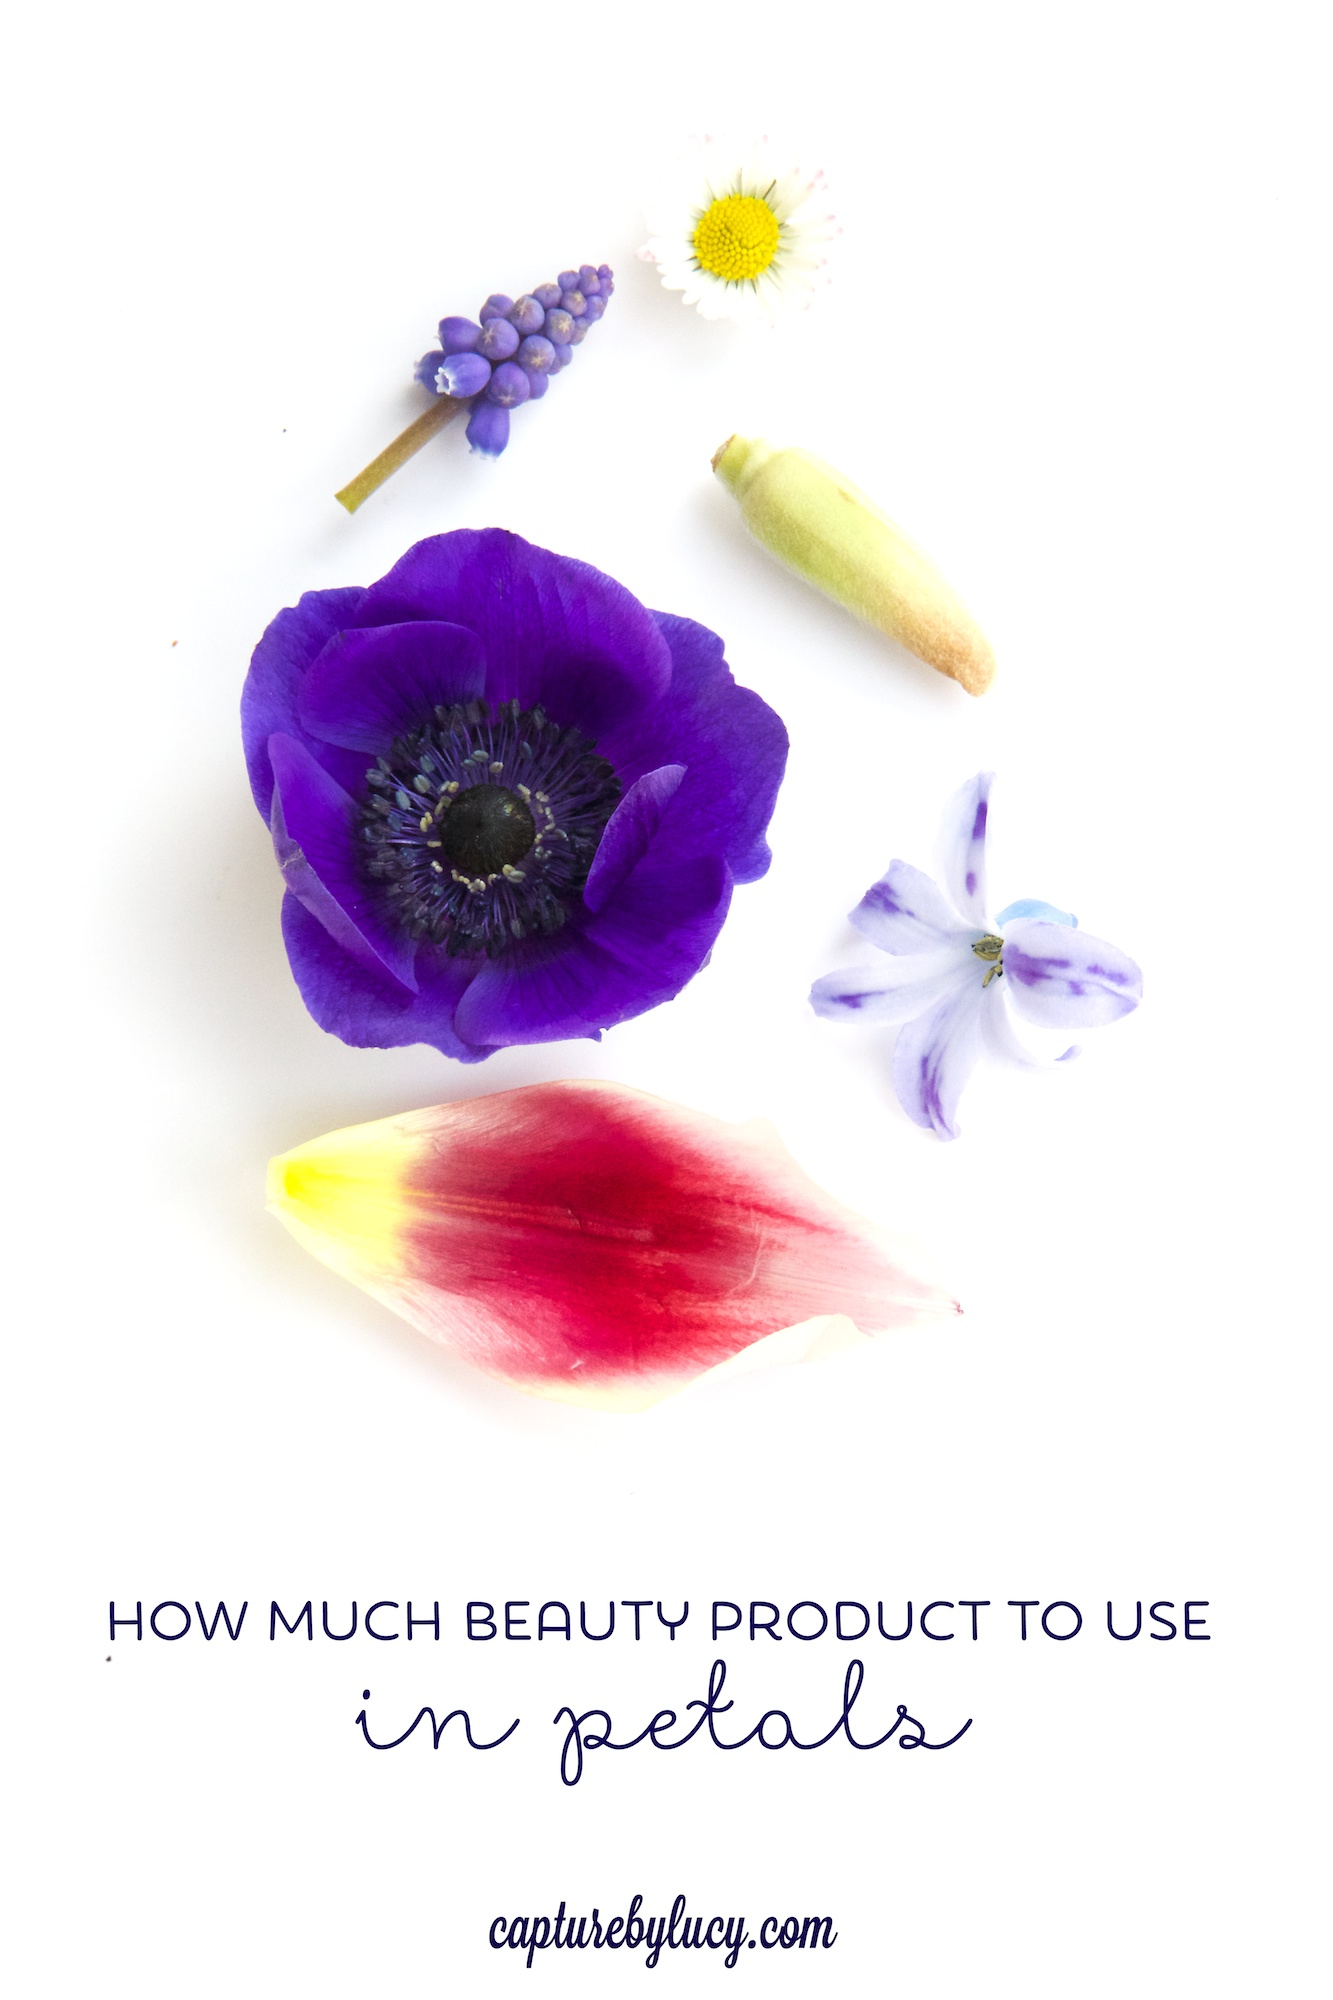 How much product should I use